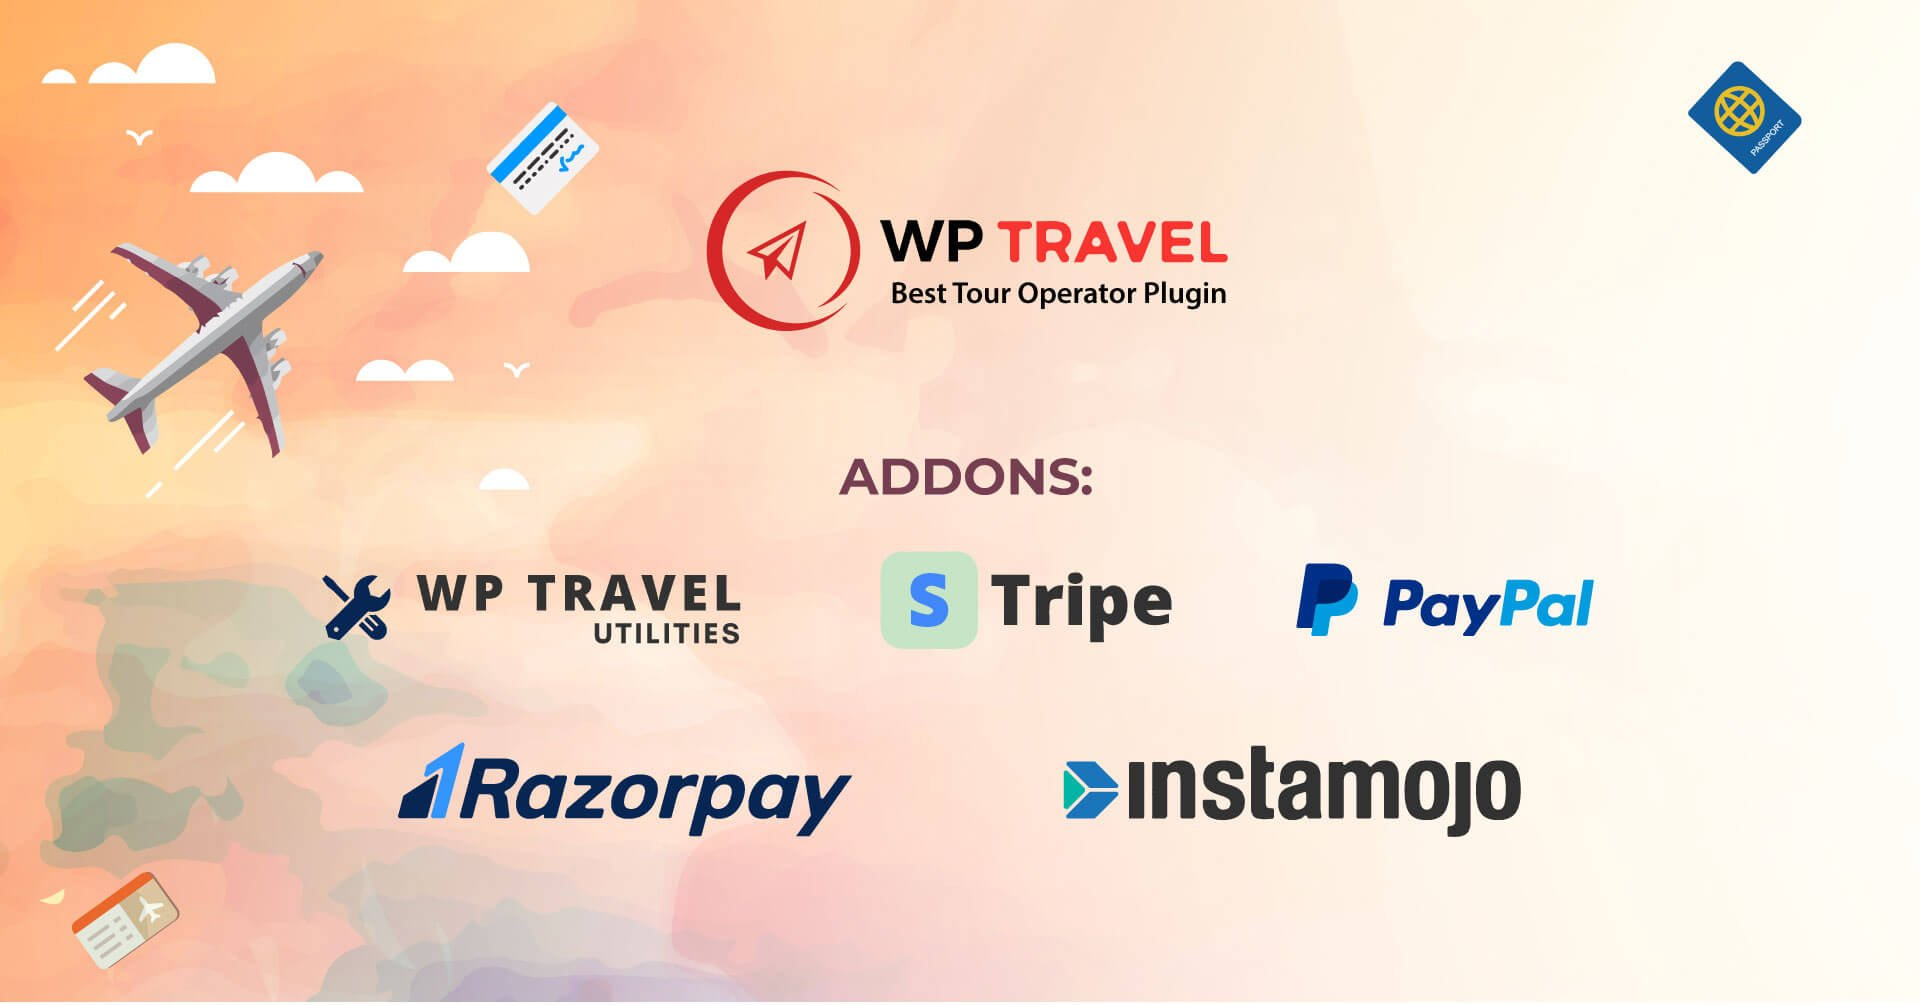 WP Travel addons